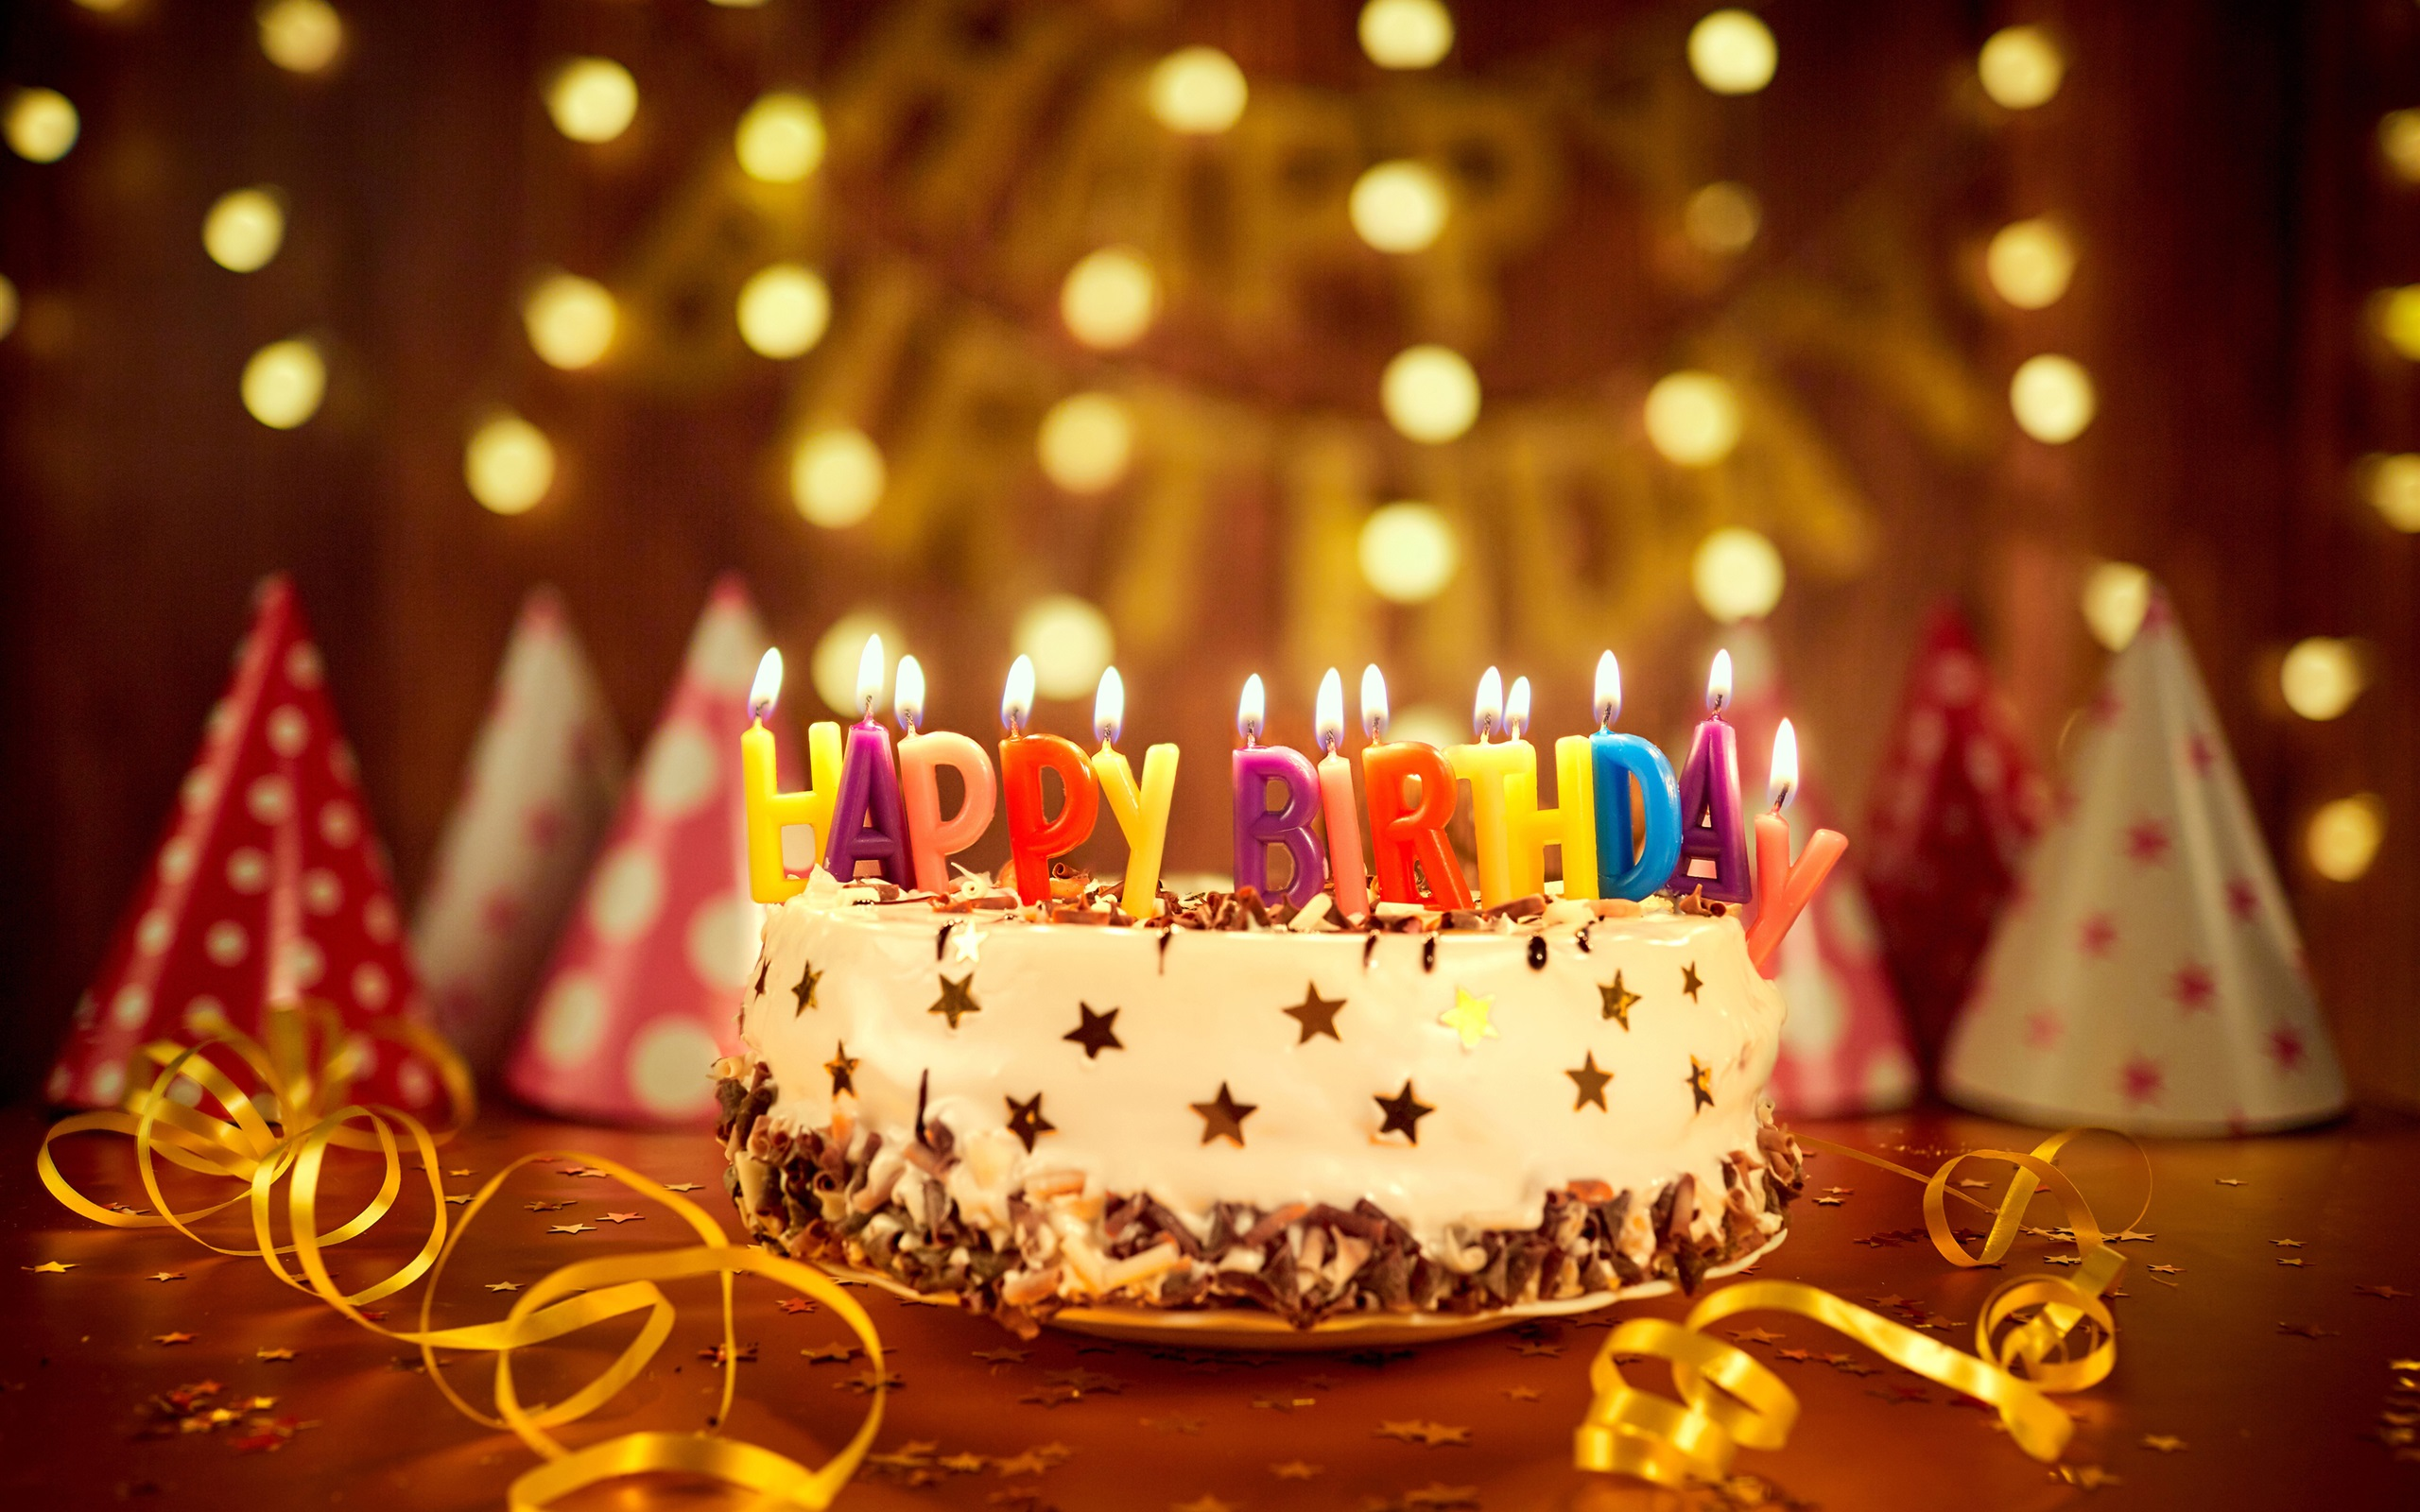 Wallpaper Happy Birthday Cake Colorful Candles Ribbon 3840x2160